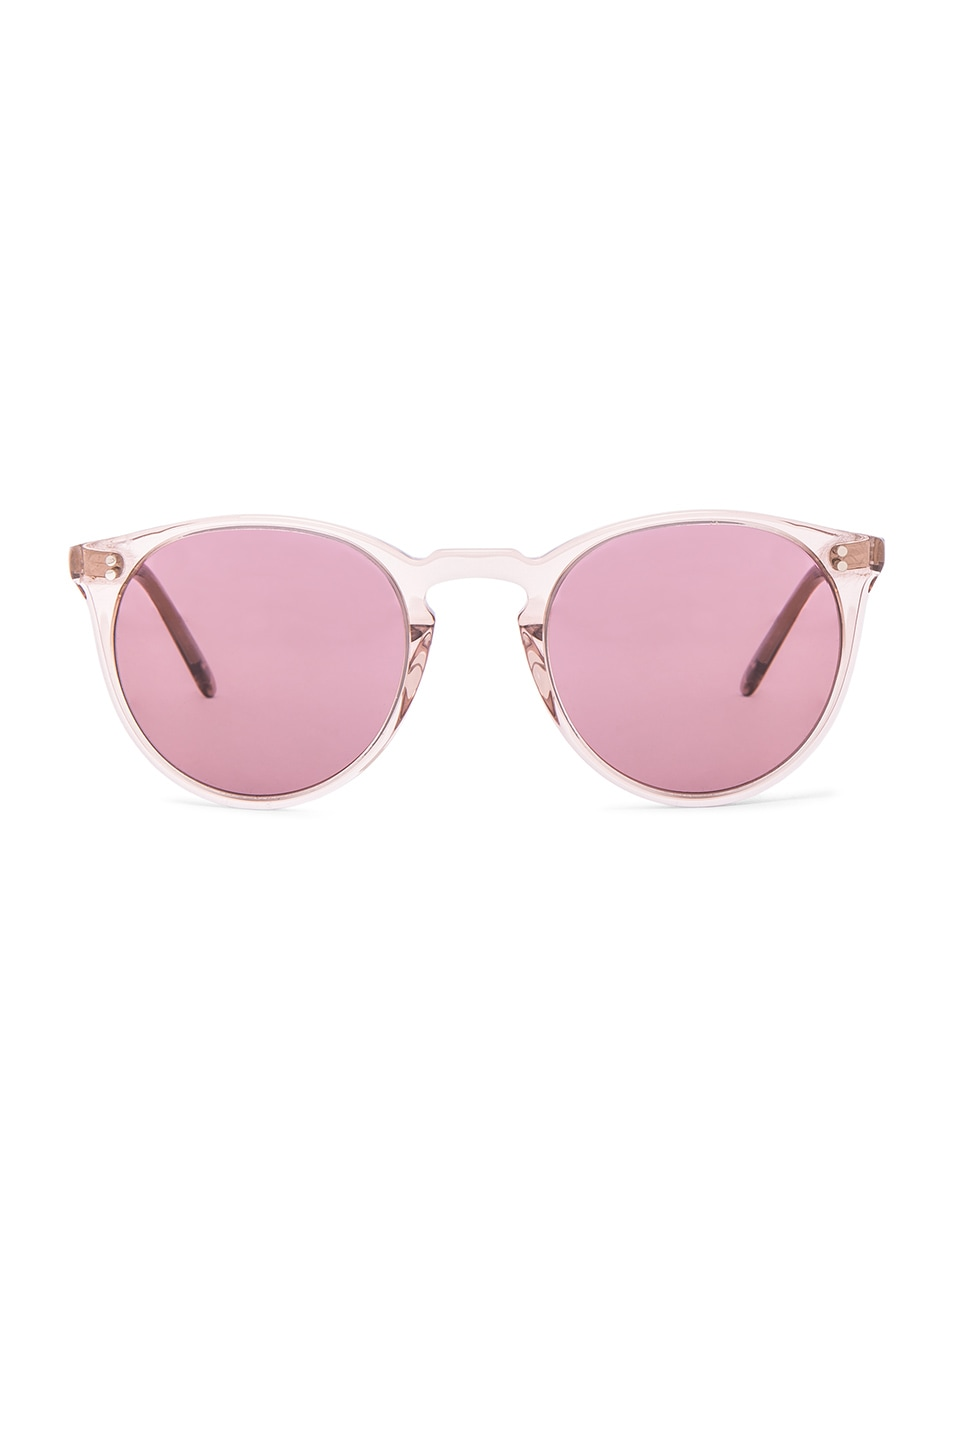 Image 1 of Oliver Peoples The Row O'Malley NYC Sunglasses in Translucent Amber